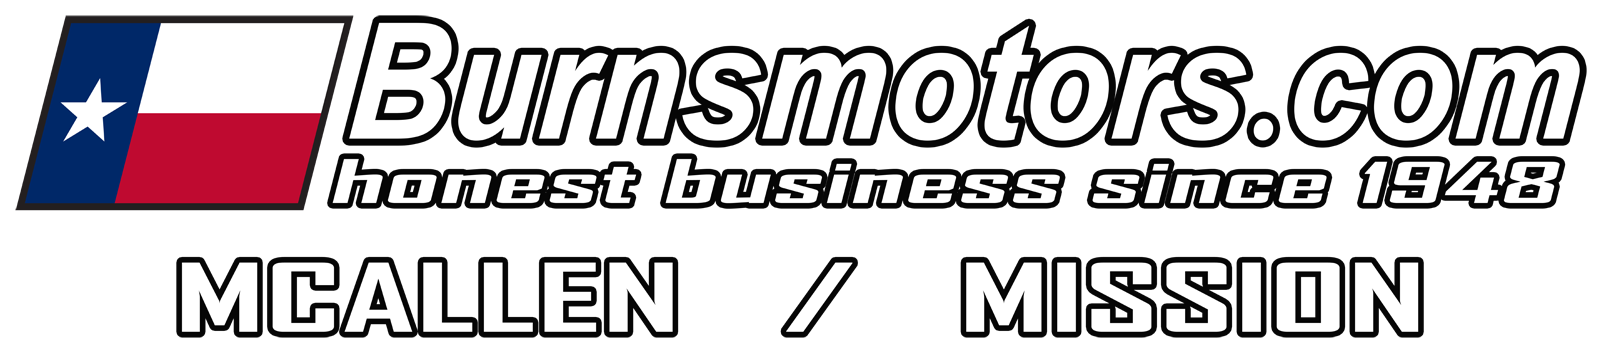 Burnsmotors.com logo